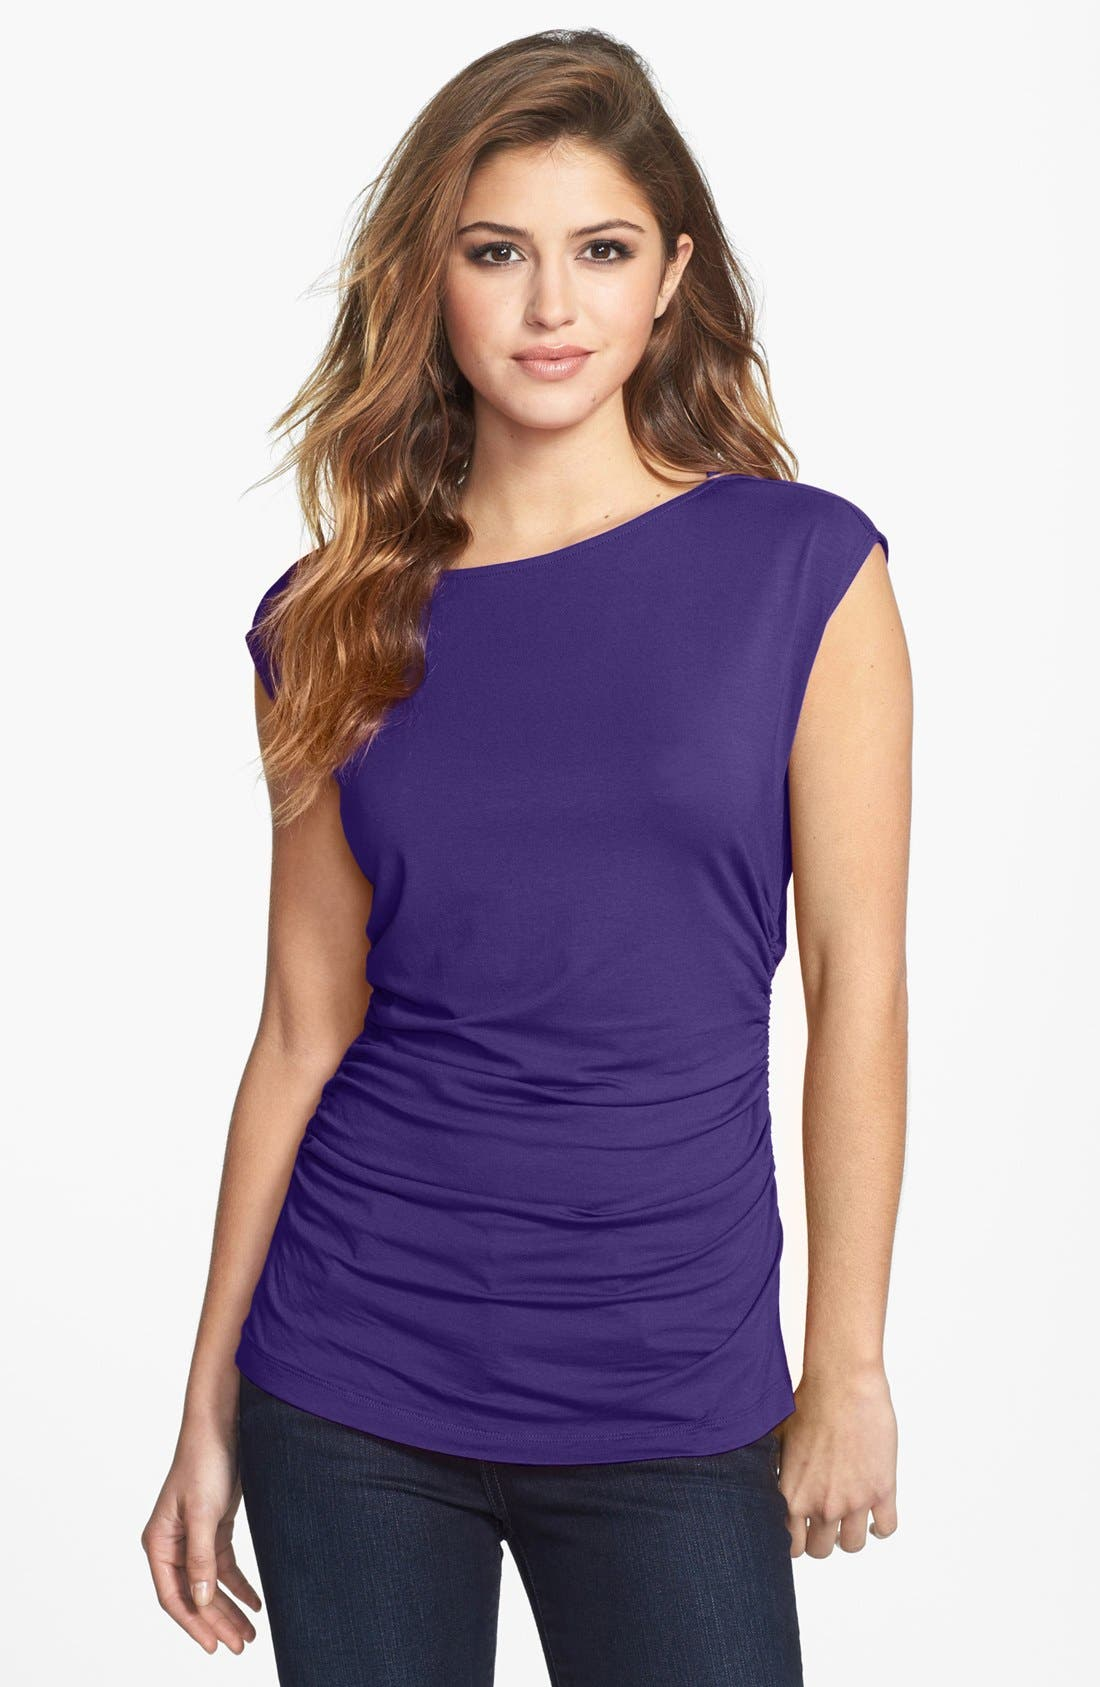 Alternate Image 1 Selected - Vince Camuto Boatneck Side Ruched Tee (Petite)